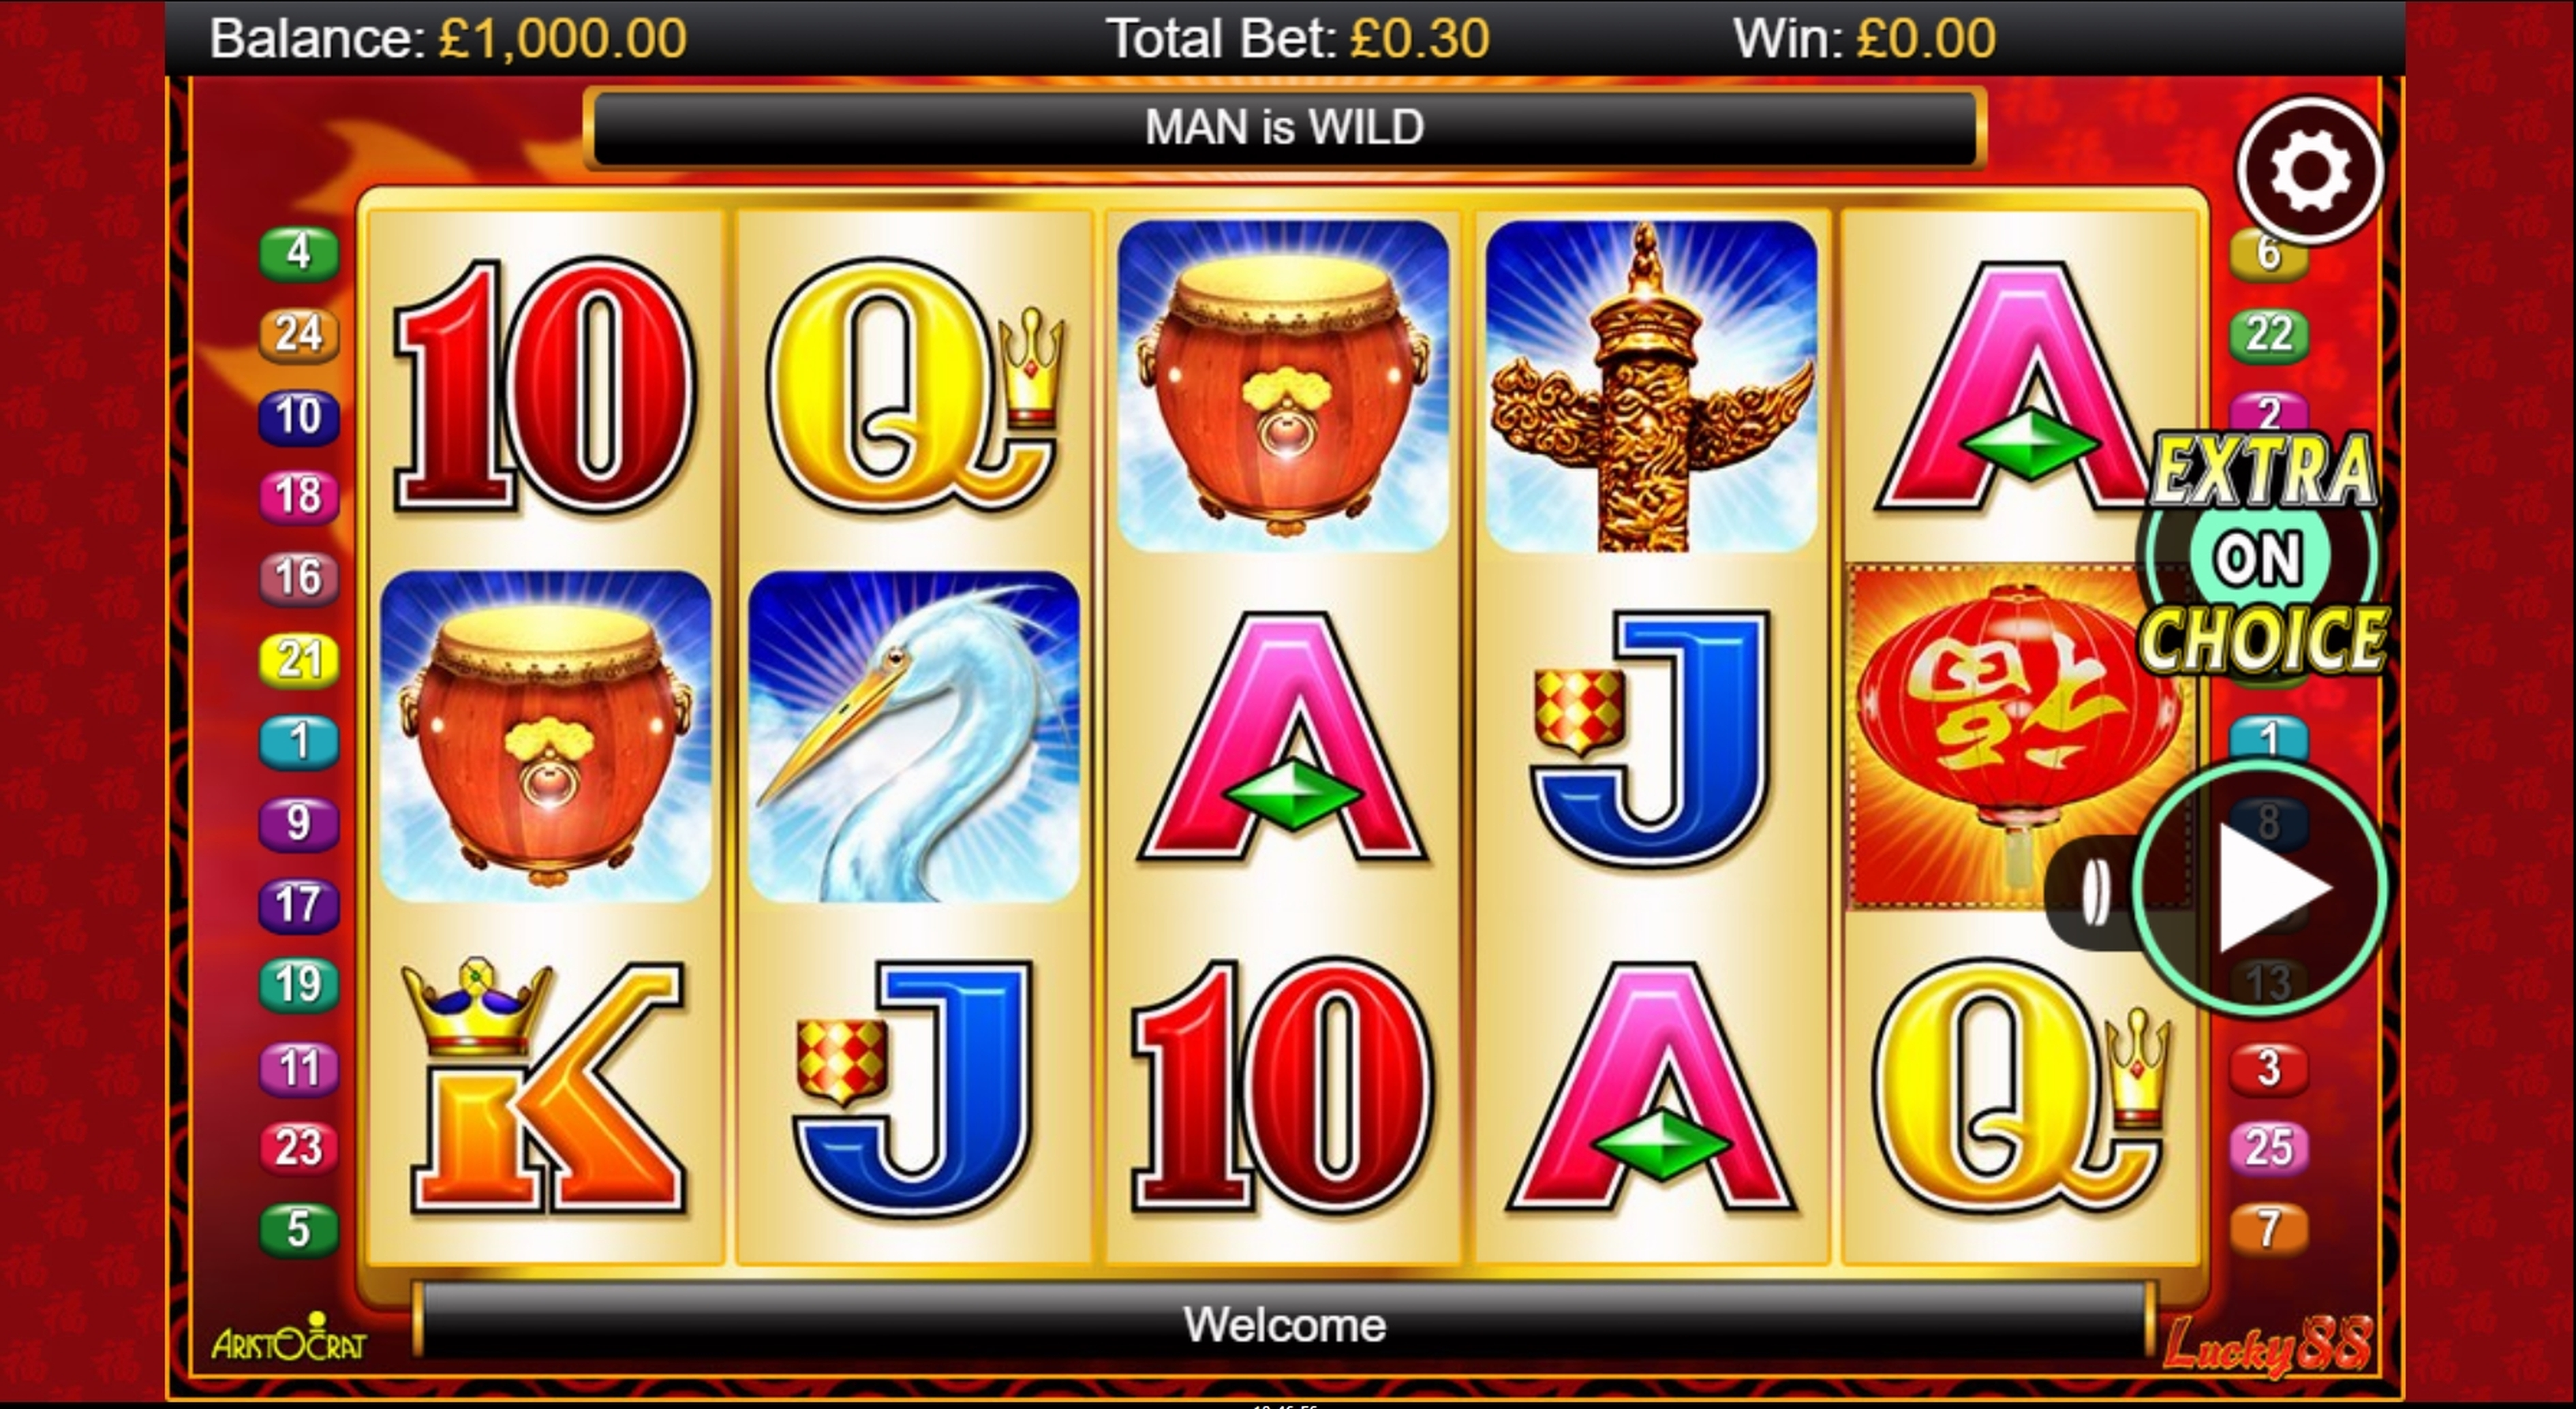 Reels in Lucky 88 Slot Game by Aristocrat